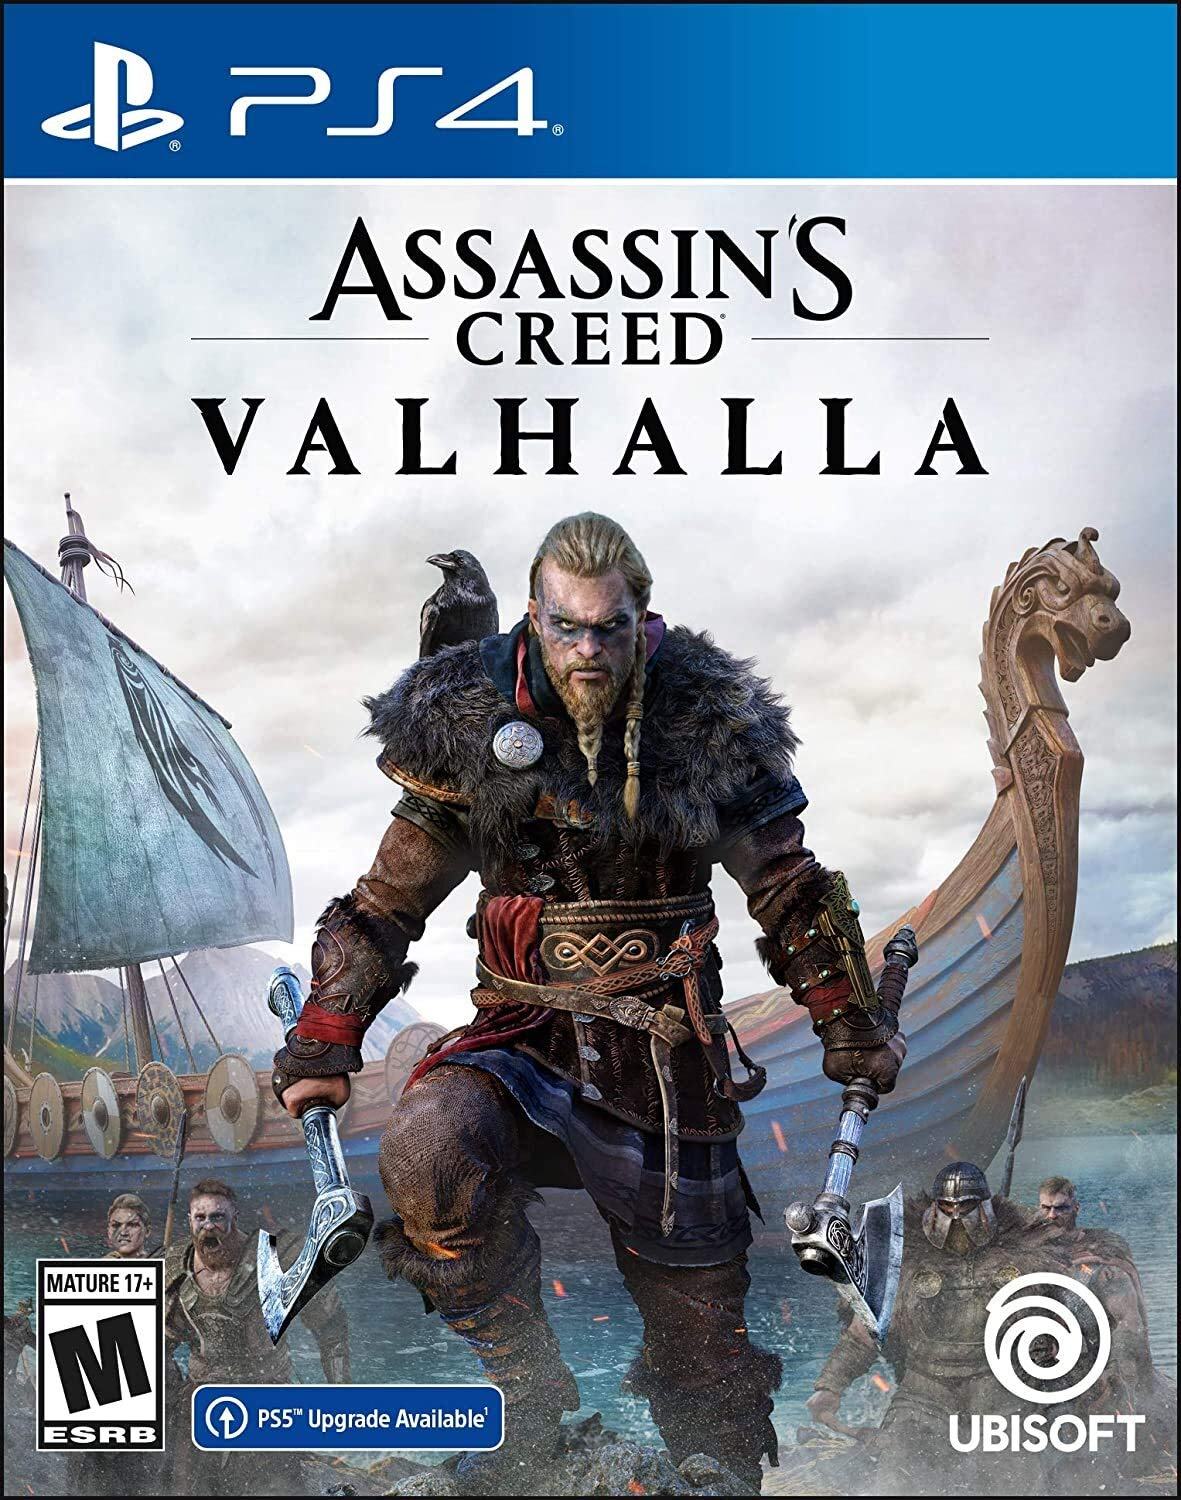 Assassin's Creed Valhalla Cover Art